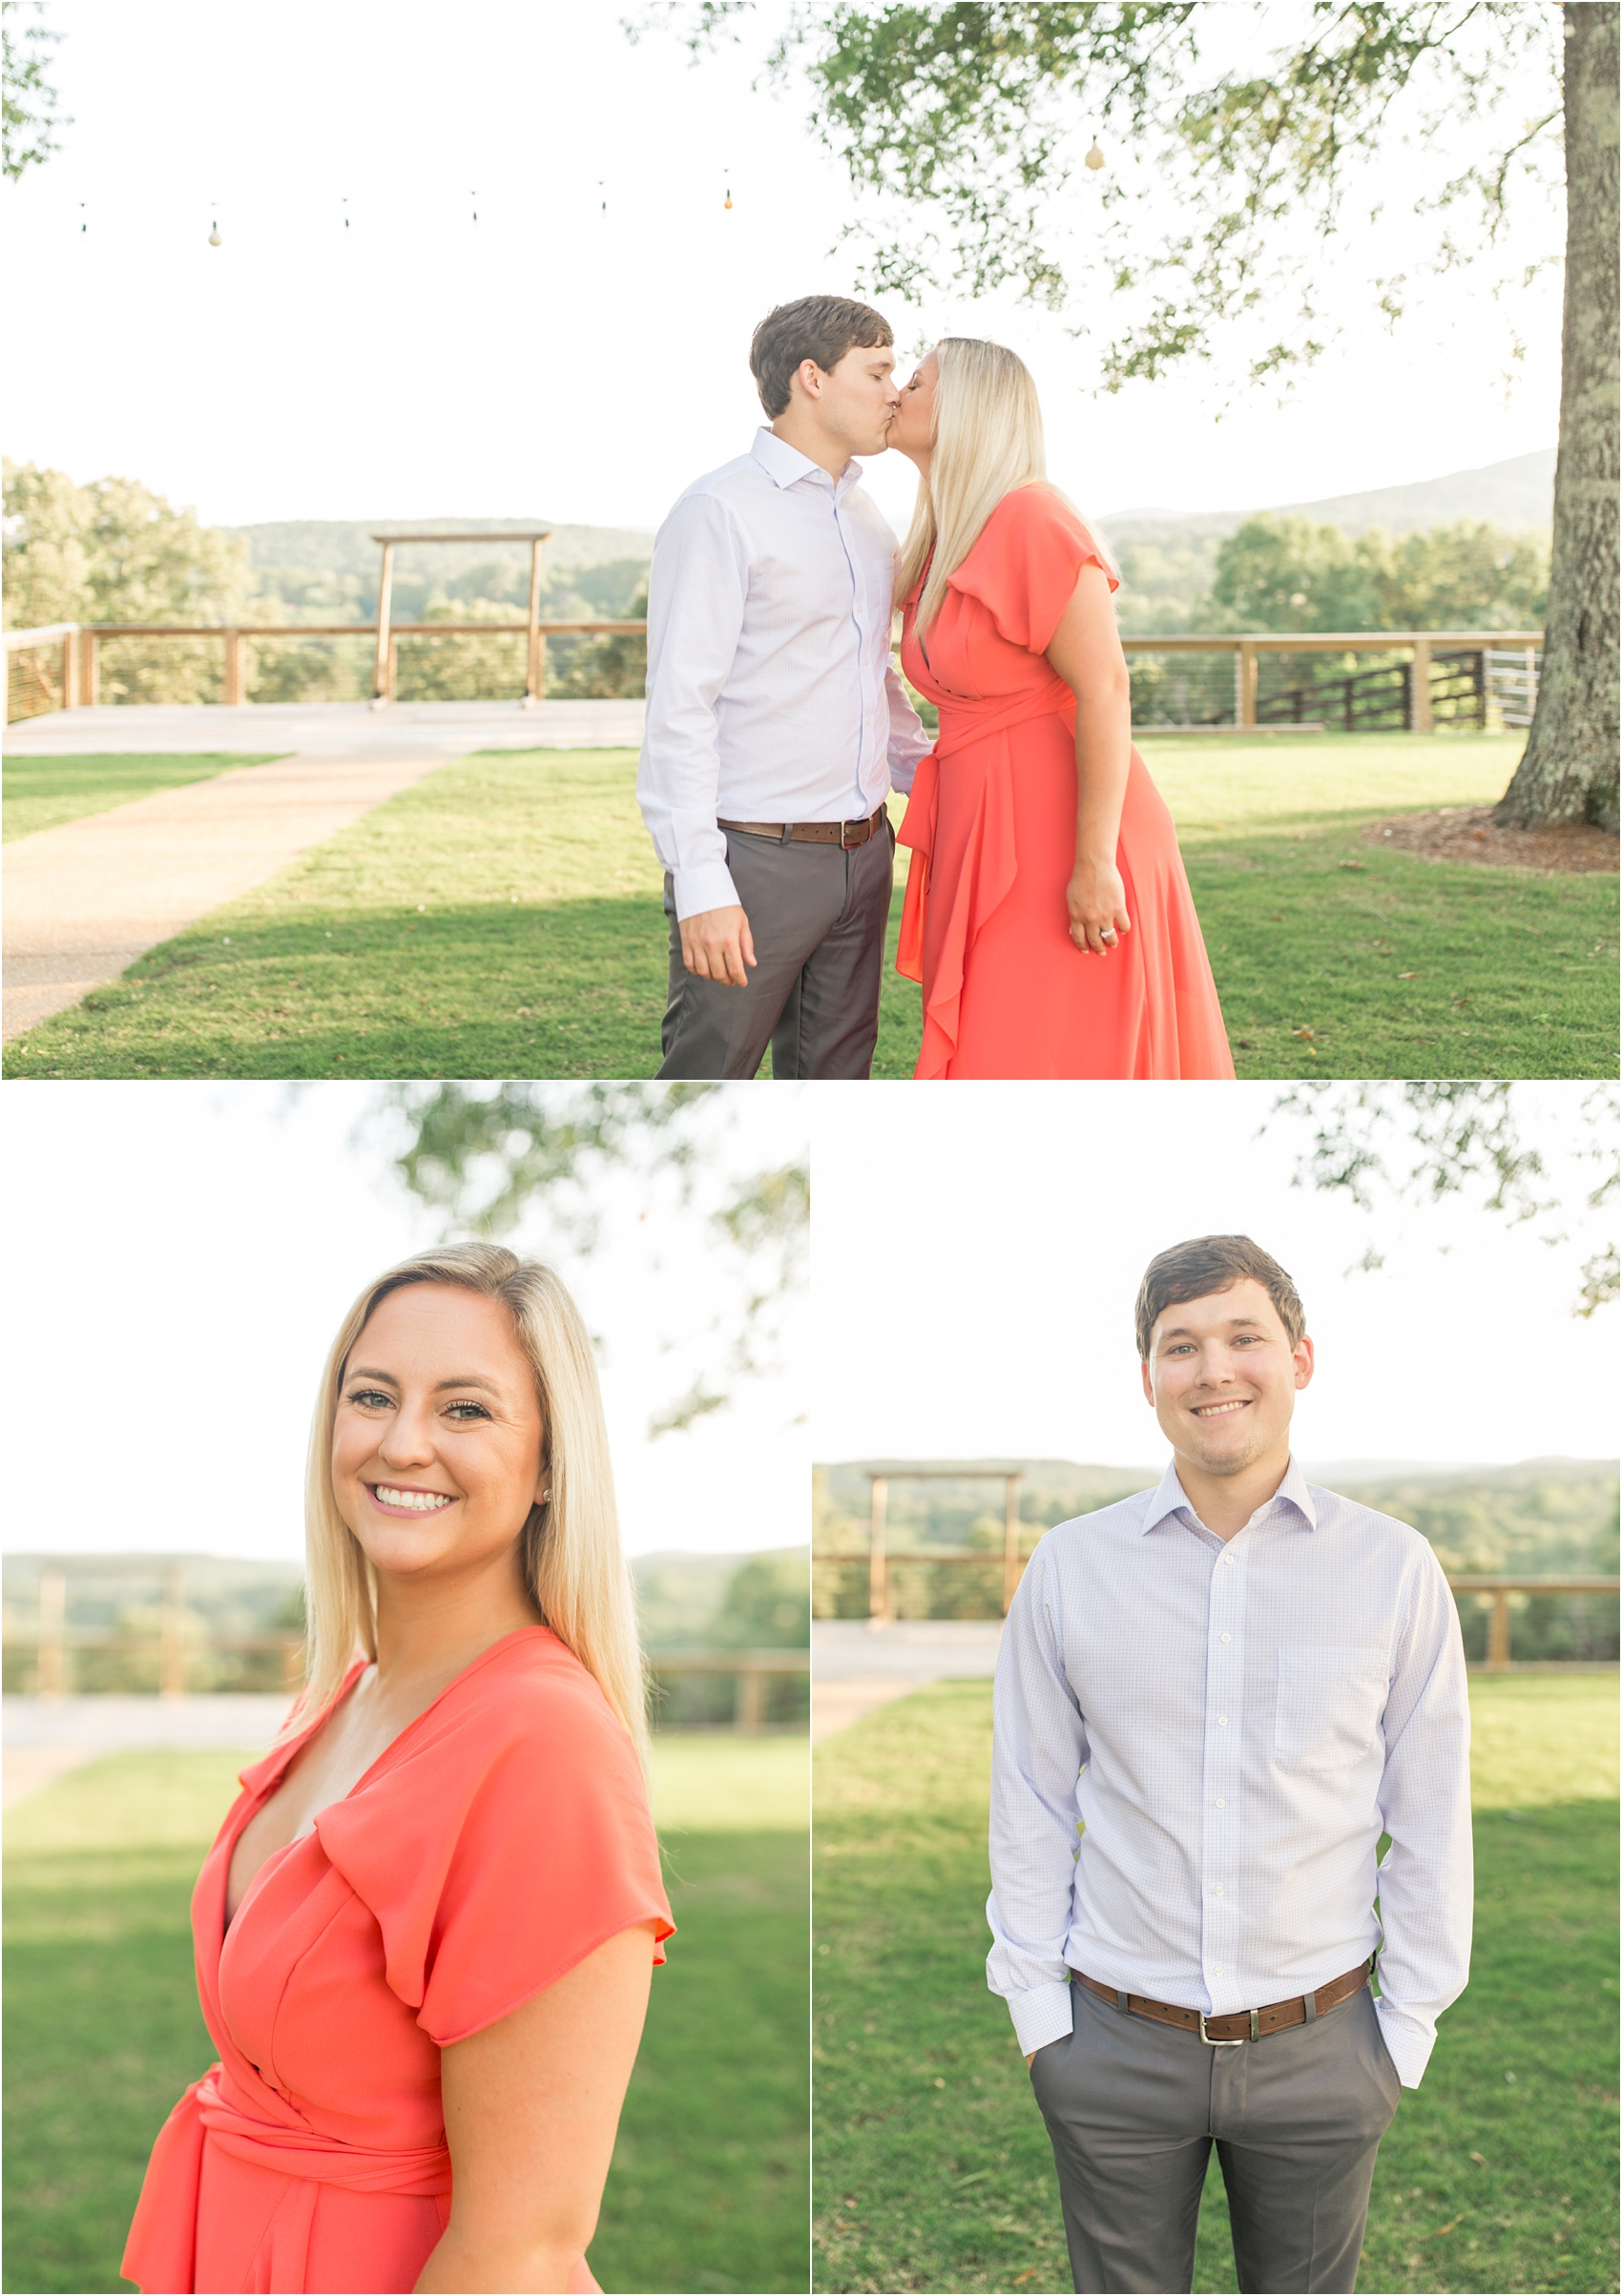 Savannah Eve Photography LLC- Settlemyer-Heyward Engagements- Blog-5.jpg